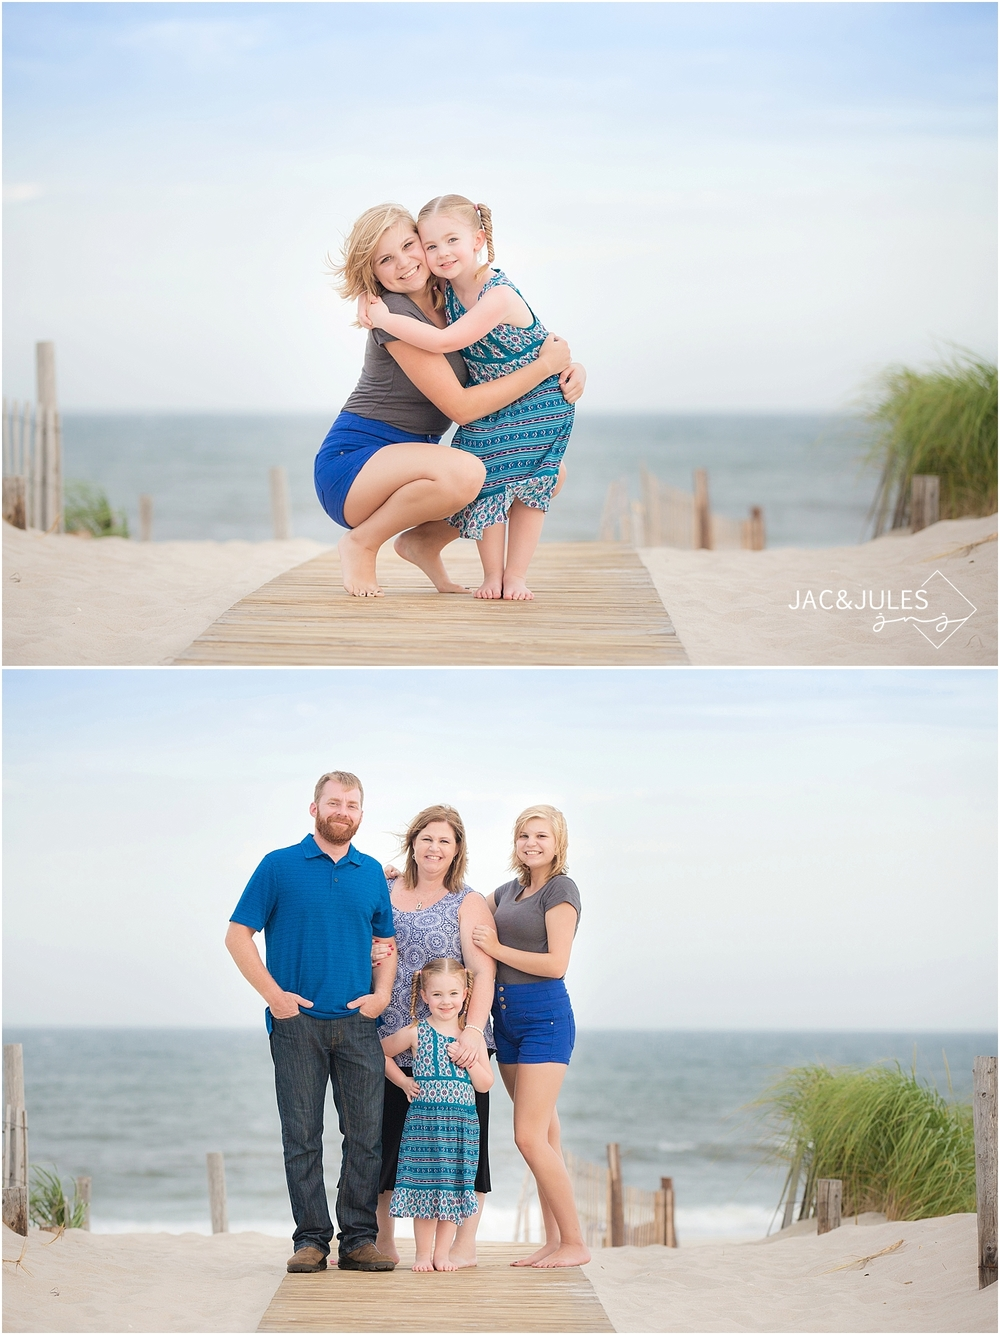 jacnjules takes fun family beach portraits in seaside park, nj